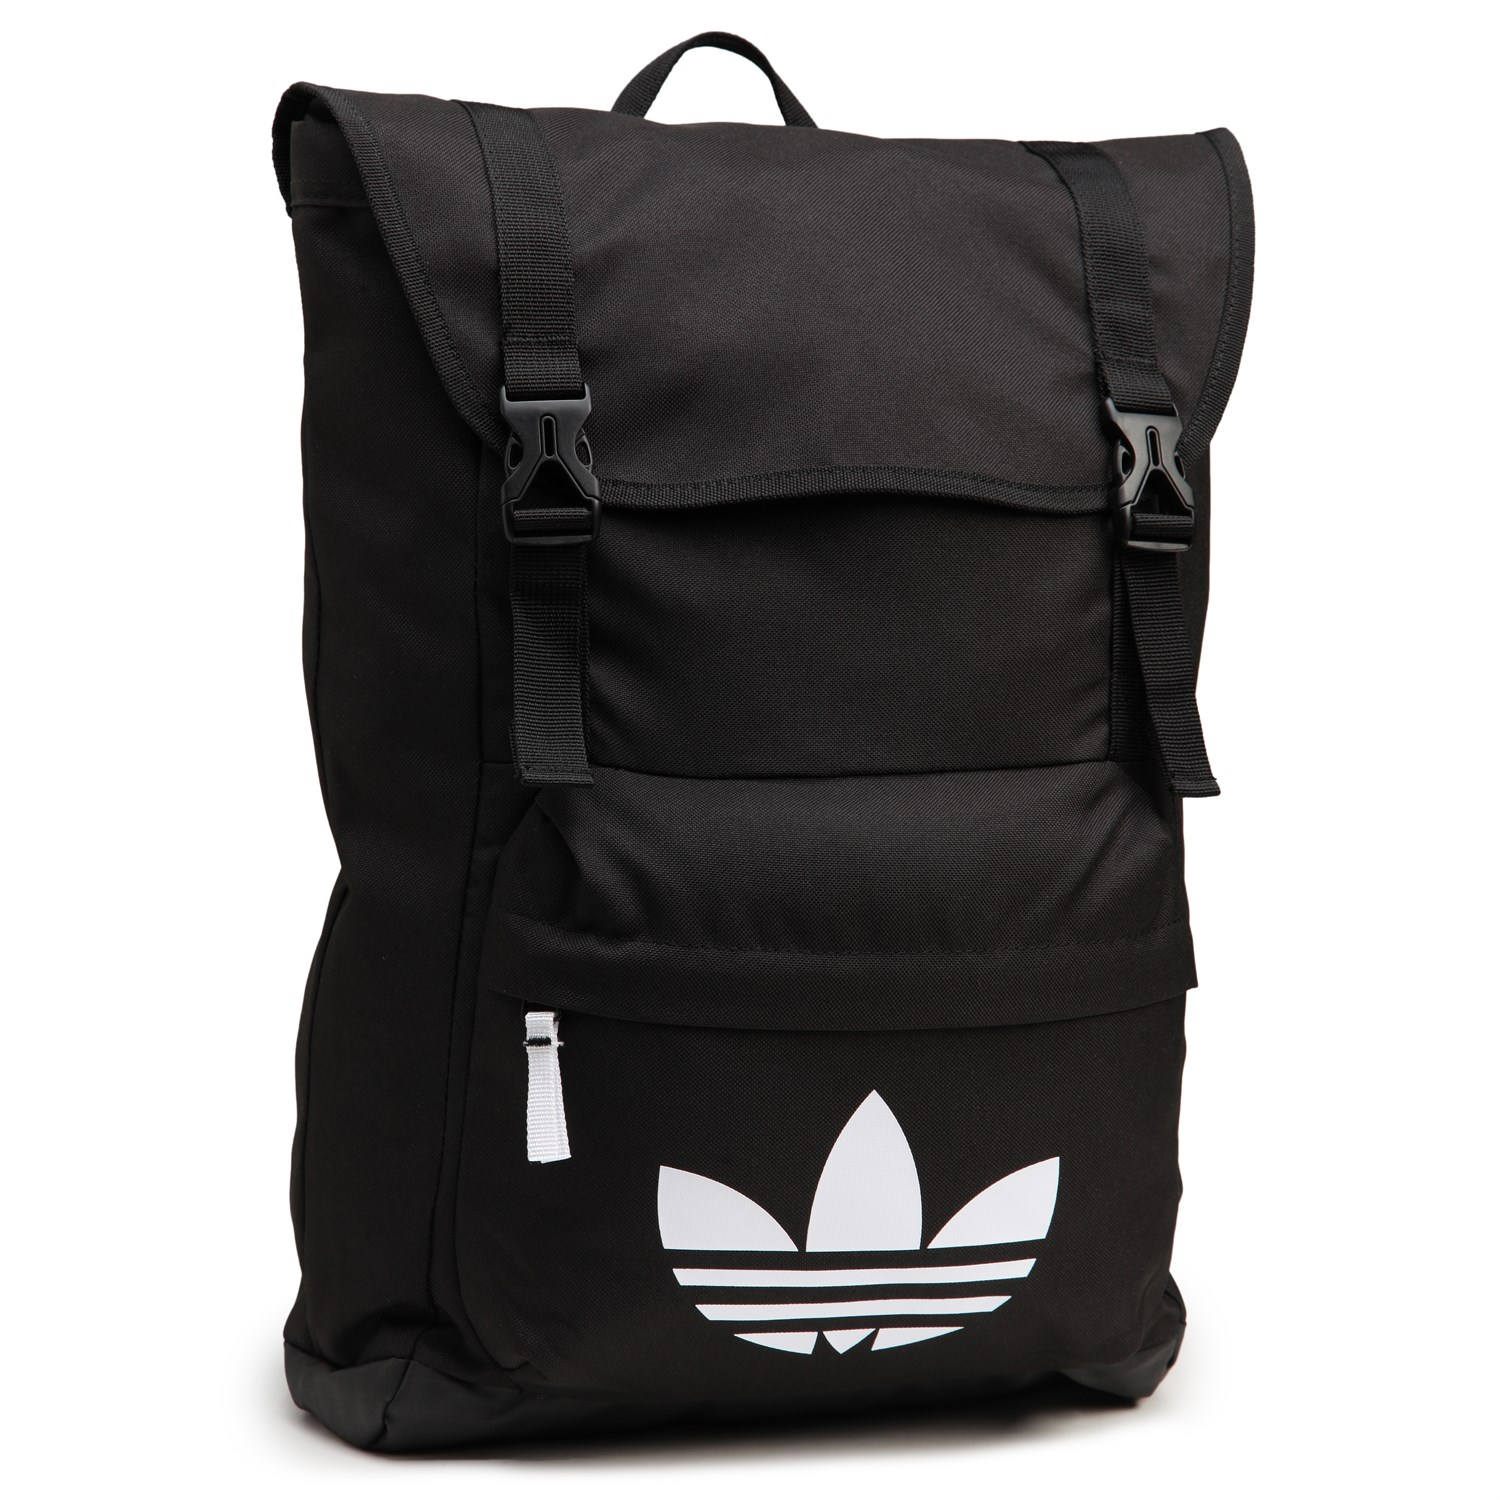 Buy adidas sackpack price   OFF79% Discounted 43fc6f1e3a3af